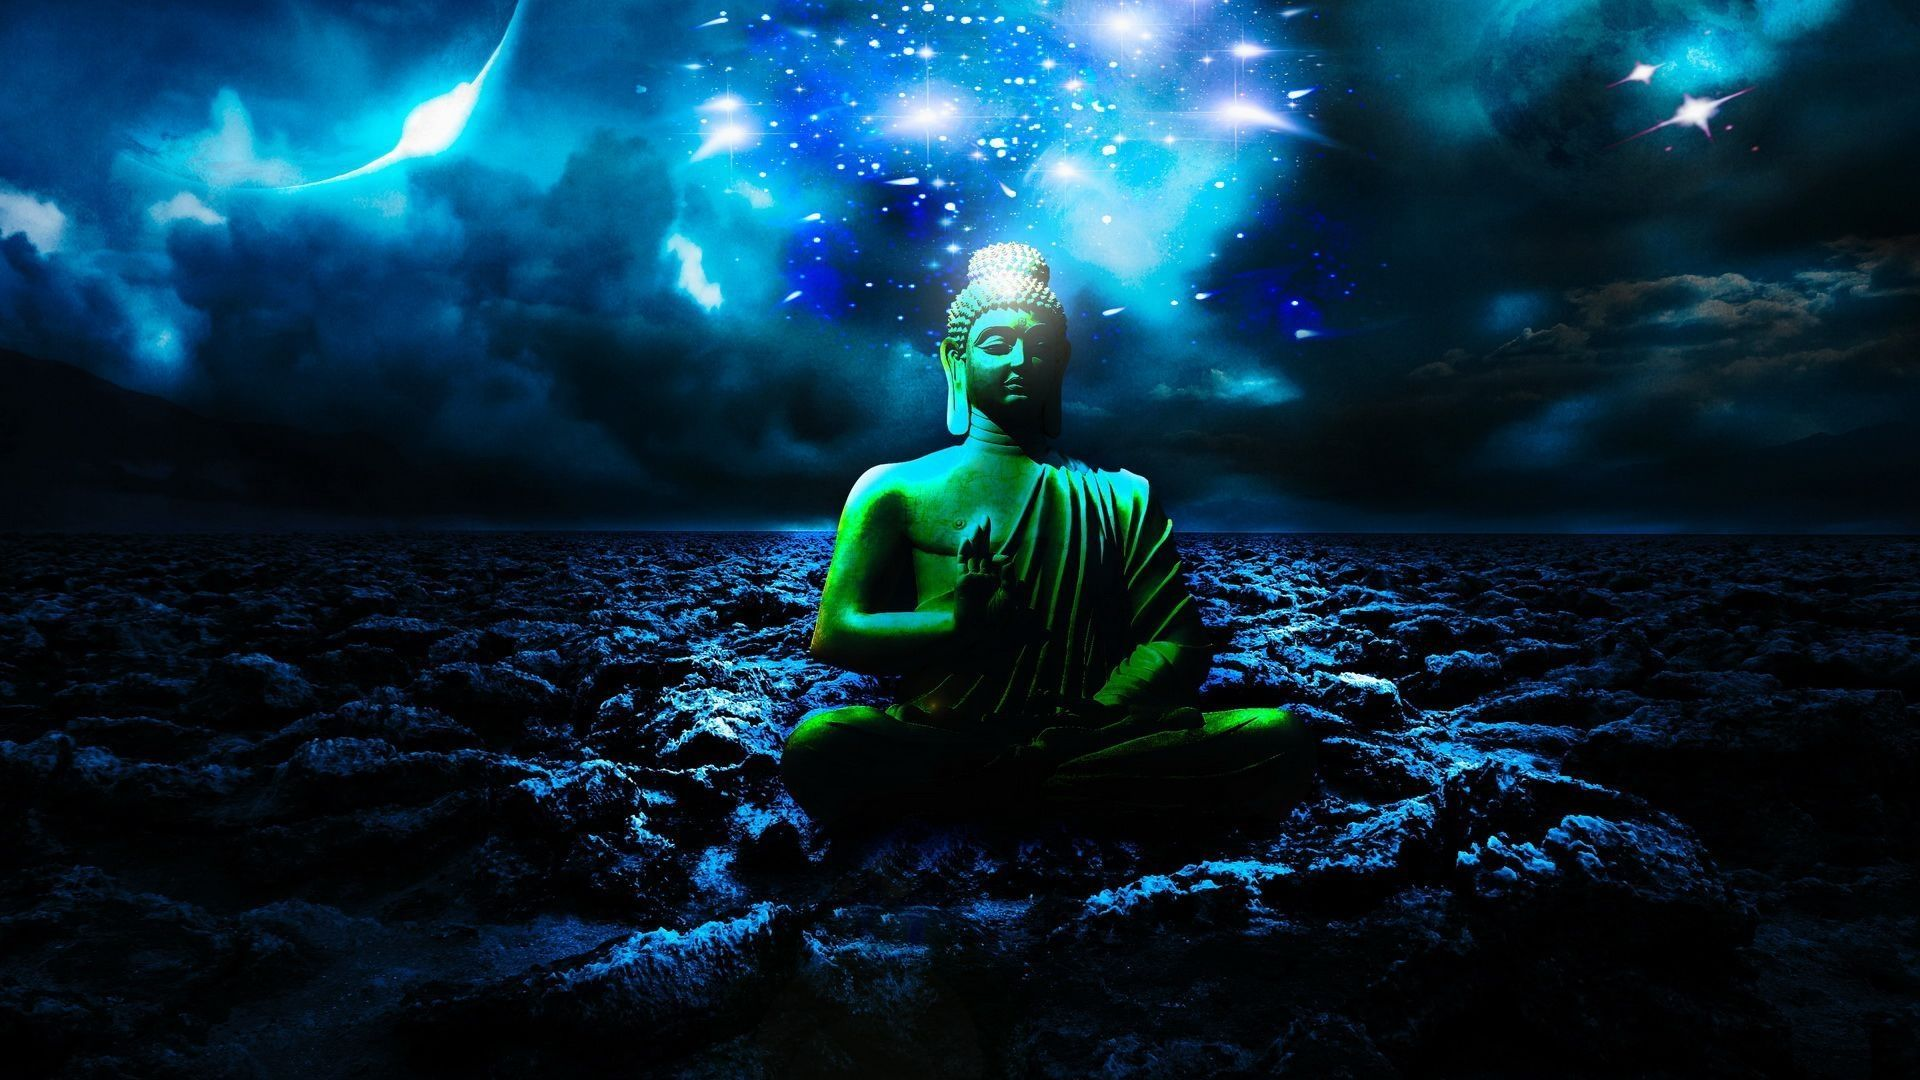 Buddha Meditation Wallpaper Photo Px MB Other Android Art Wallpapers Chakra Gallery Hd Inner Peace Iphone Monk And Serenity Universe Widescreen